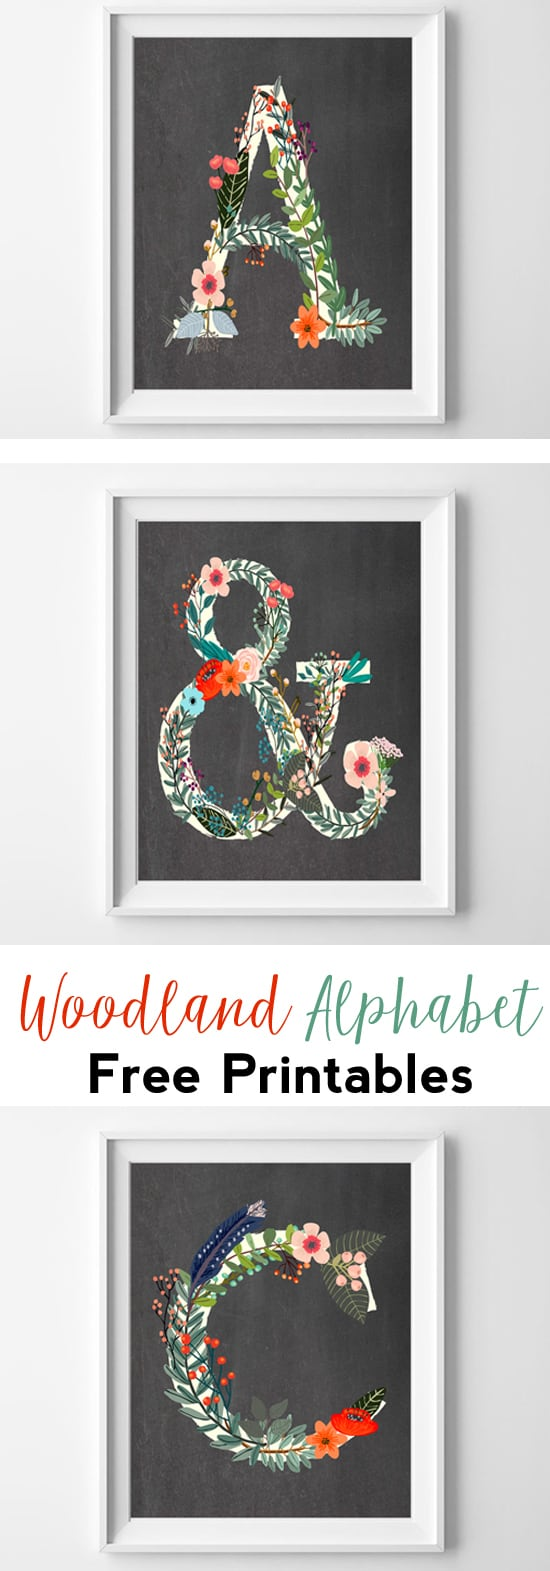 letter art | woodland alphabet | abc | free printables | initial art | nursery decor | wall art ideas